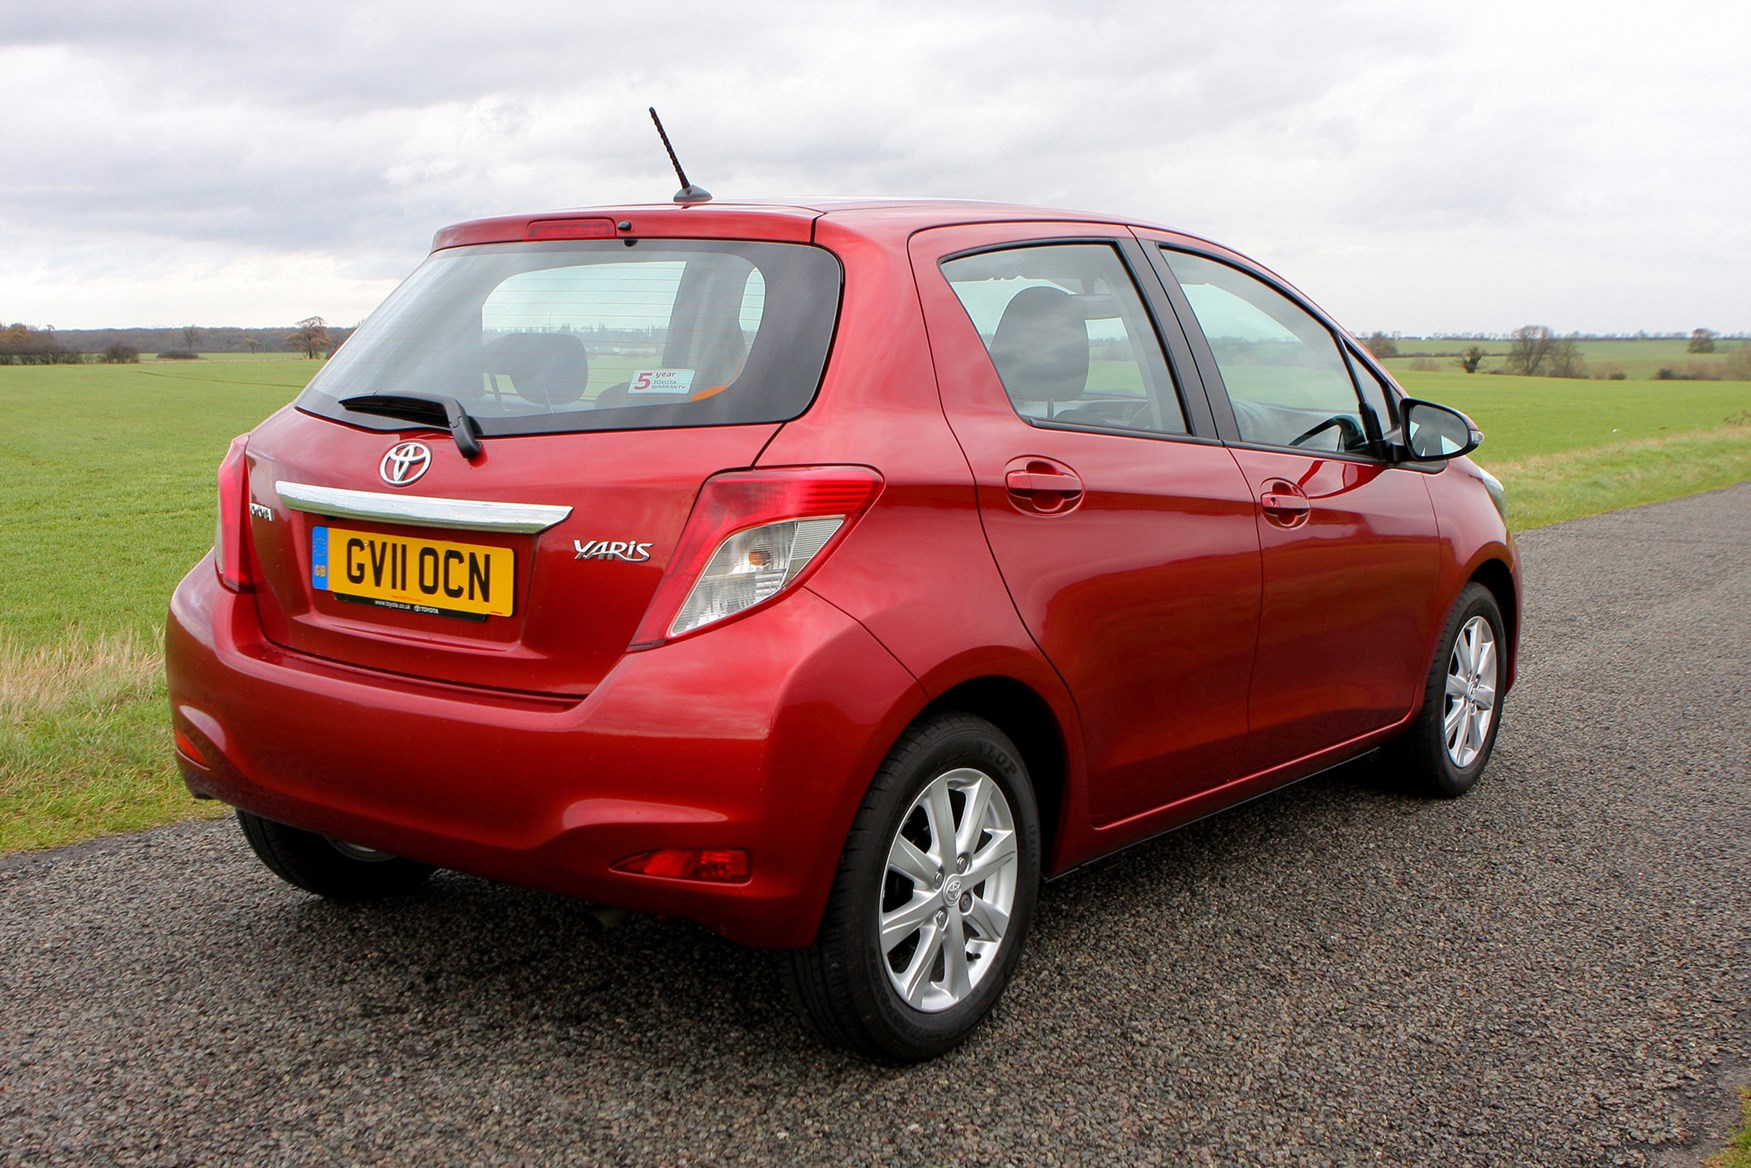 Toyota Yaris Hatchback 2011 Features Equipment And Accessories Parkers